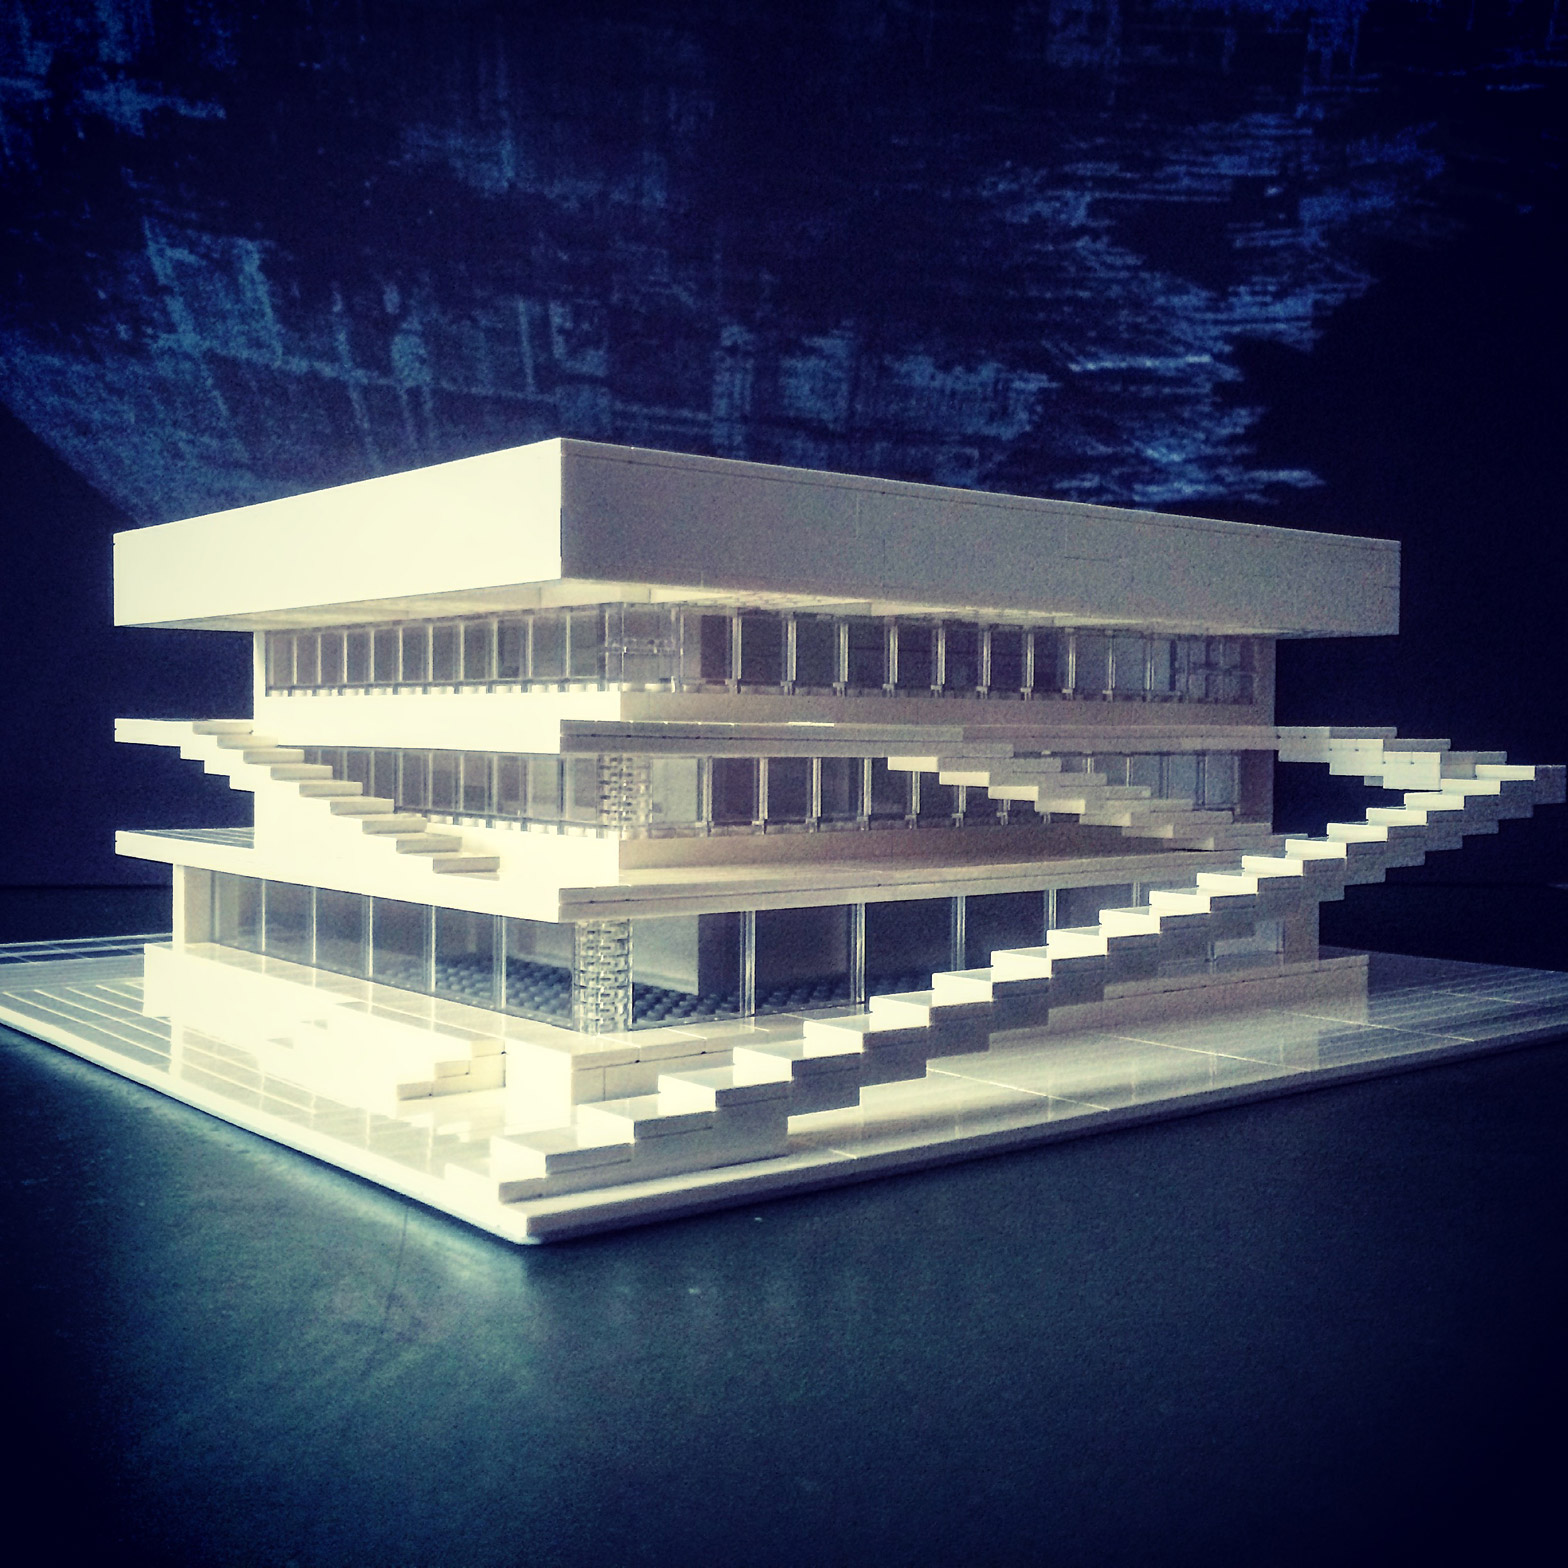 Arndt Schlaudraff recreates Brutalist buildings from Lego for Instagram